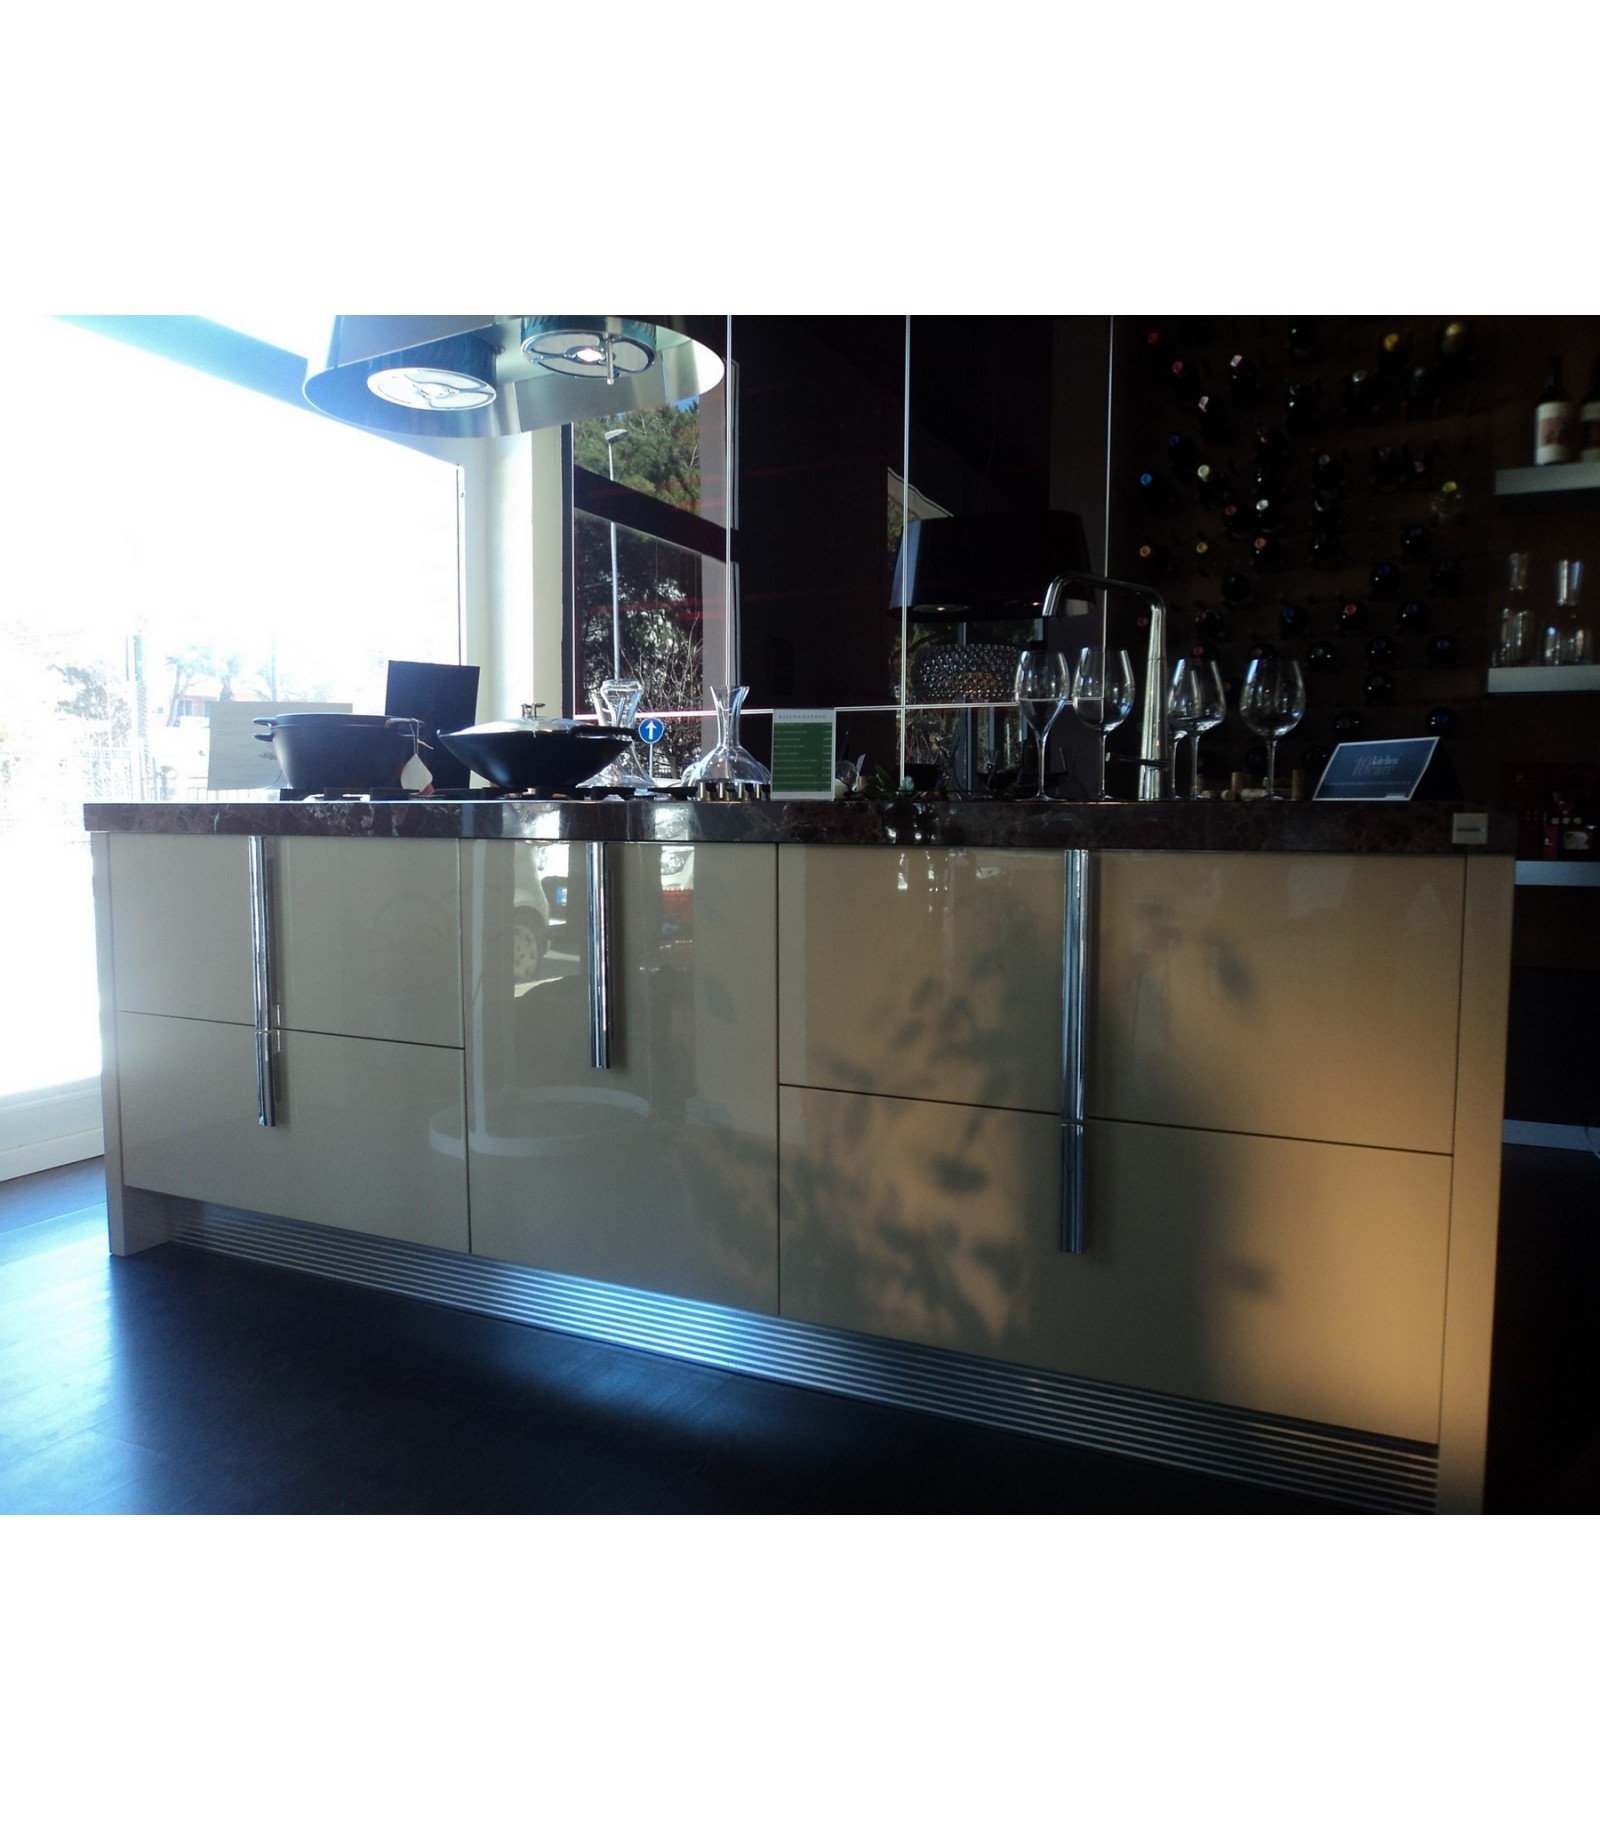 Cucina barrique ernestomeda outlet cucine mariotti casa for Cucine on line outlet